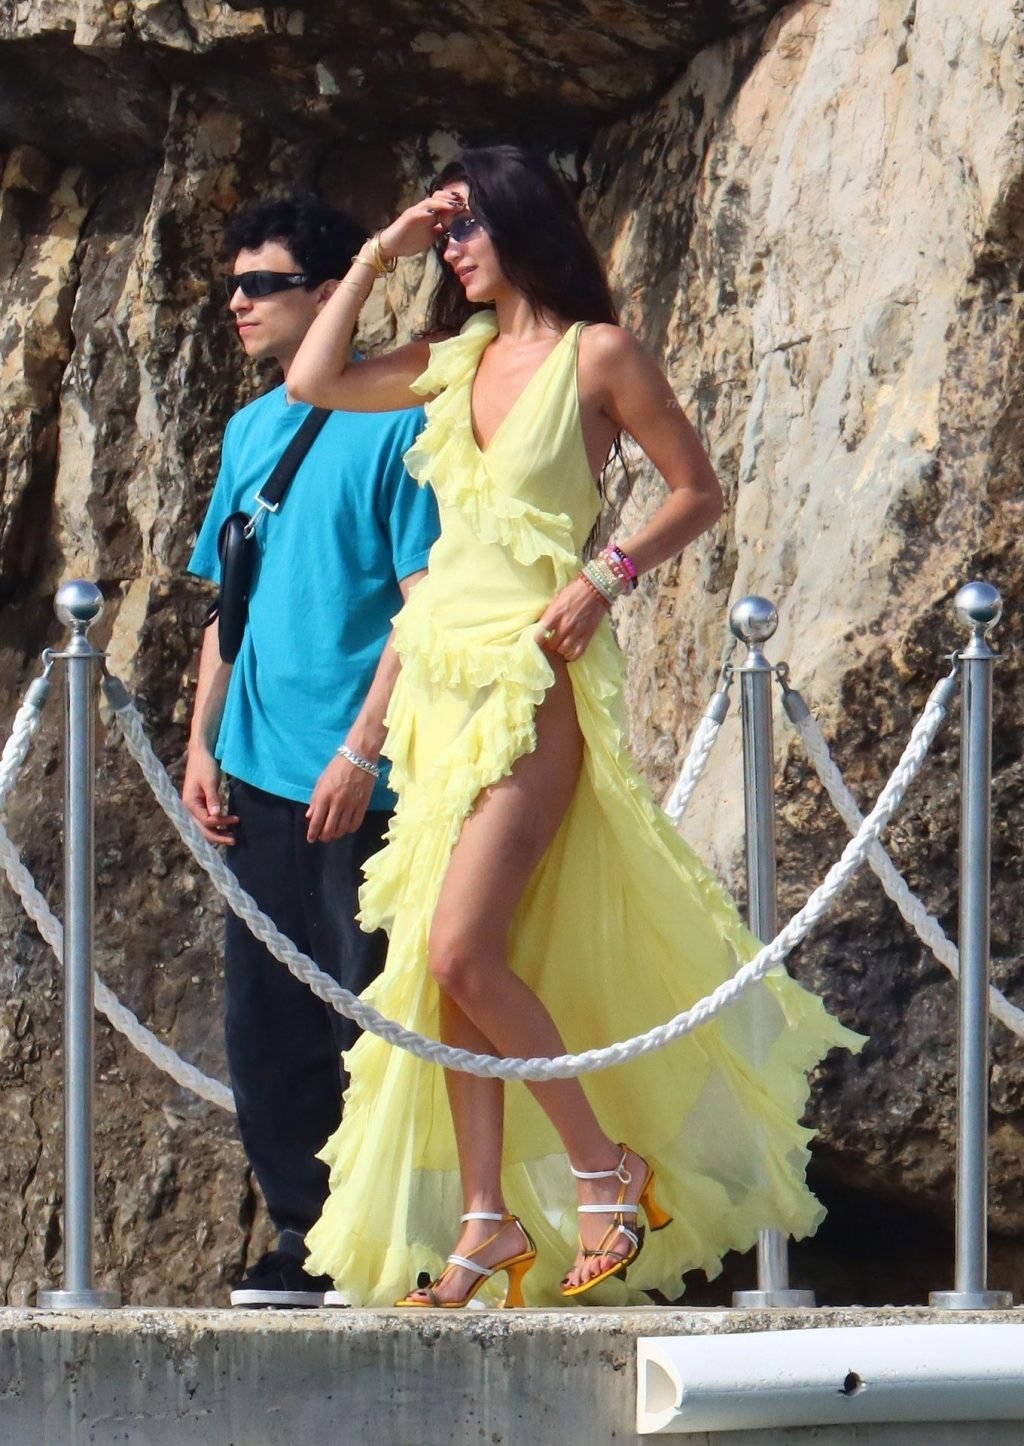 Bella Hadid is Seen With Her New Beau Marc Kalman at the Eden Roc Hotel (45 Photos)